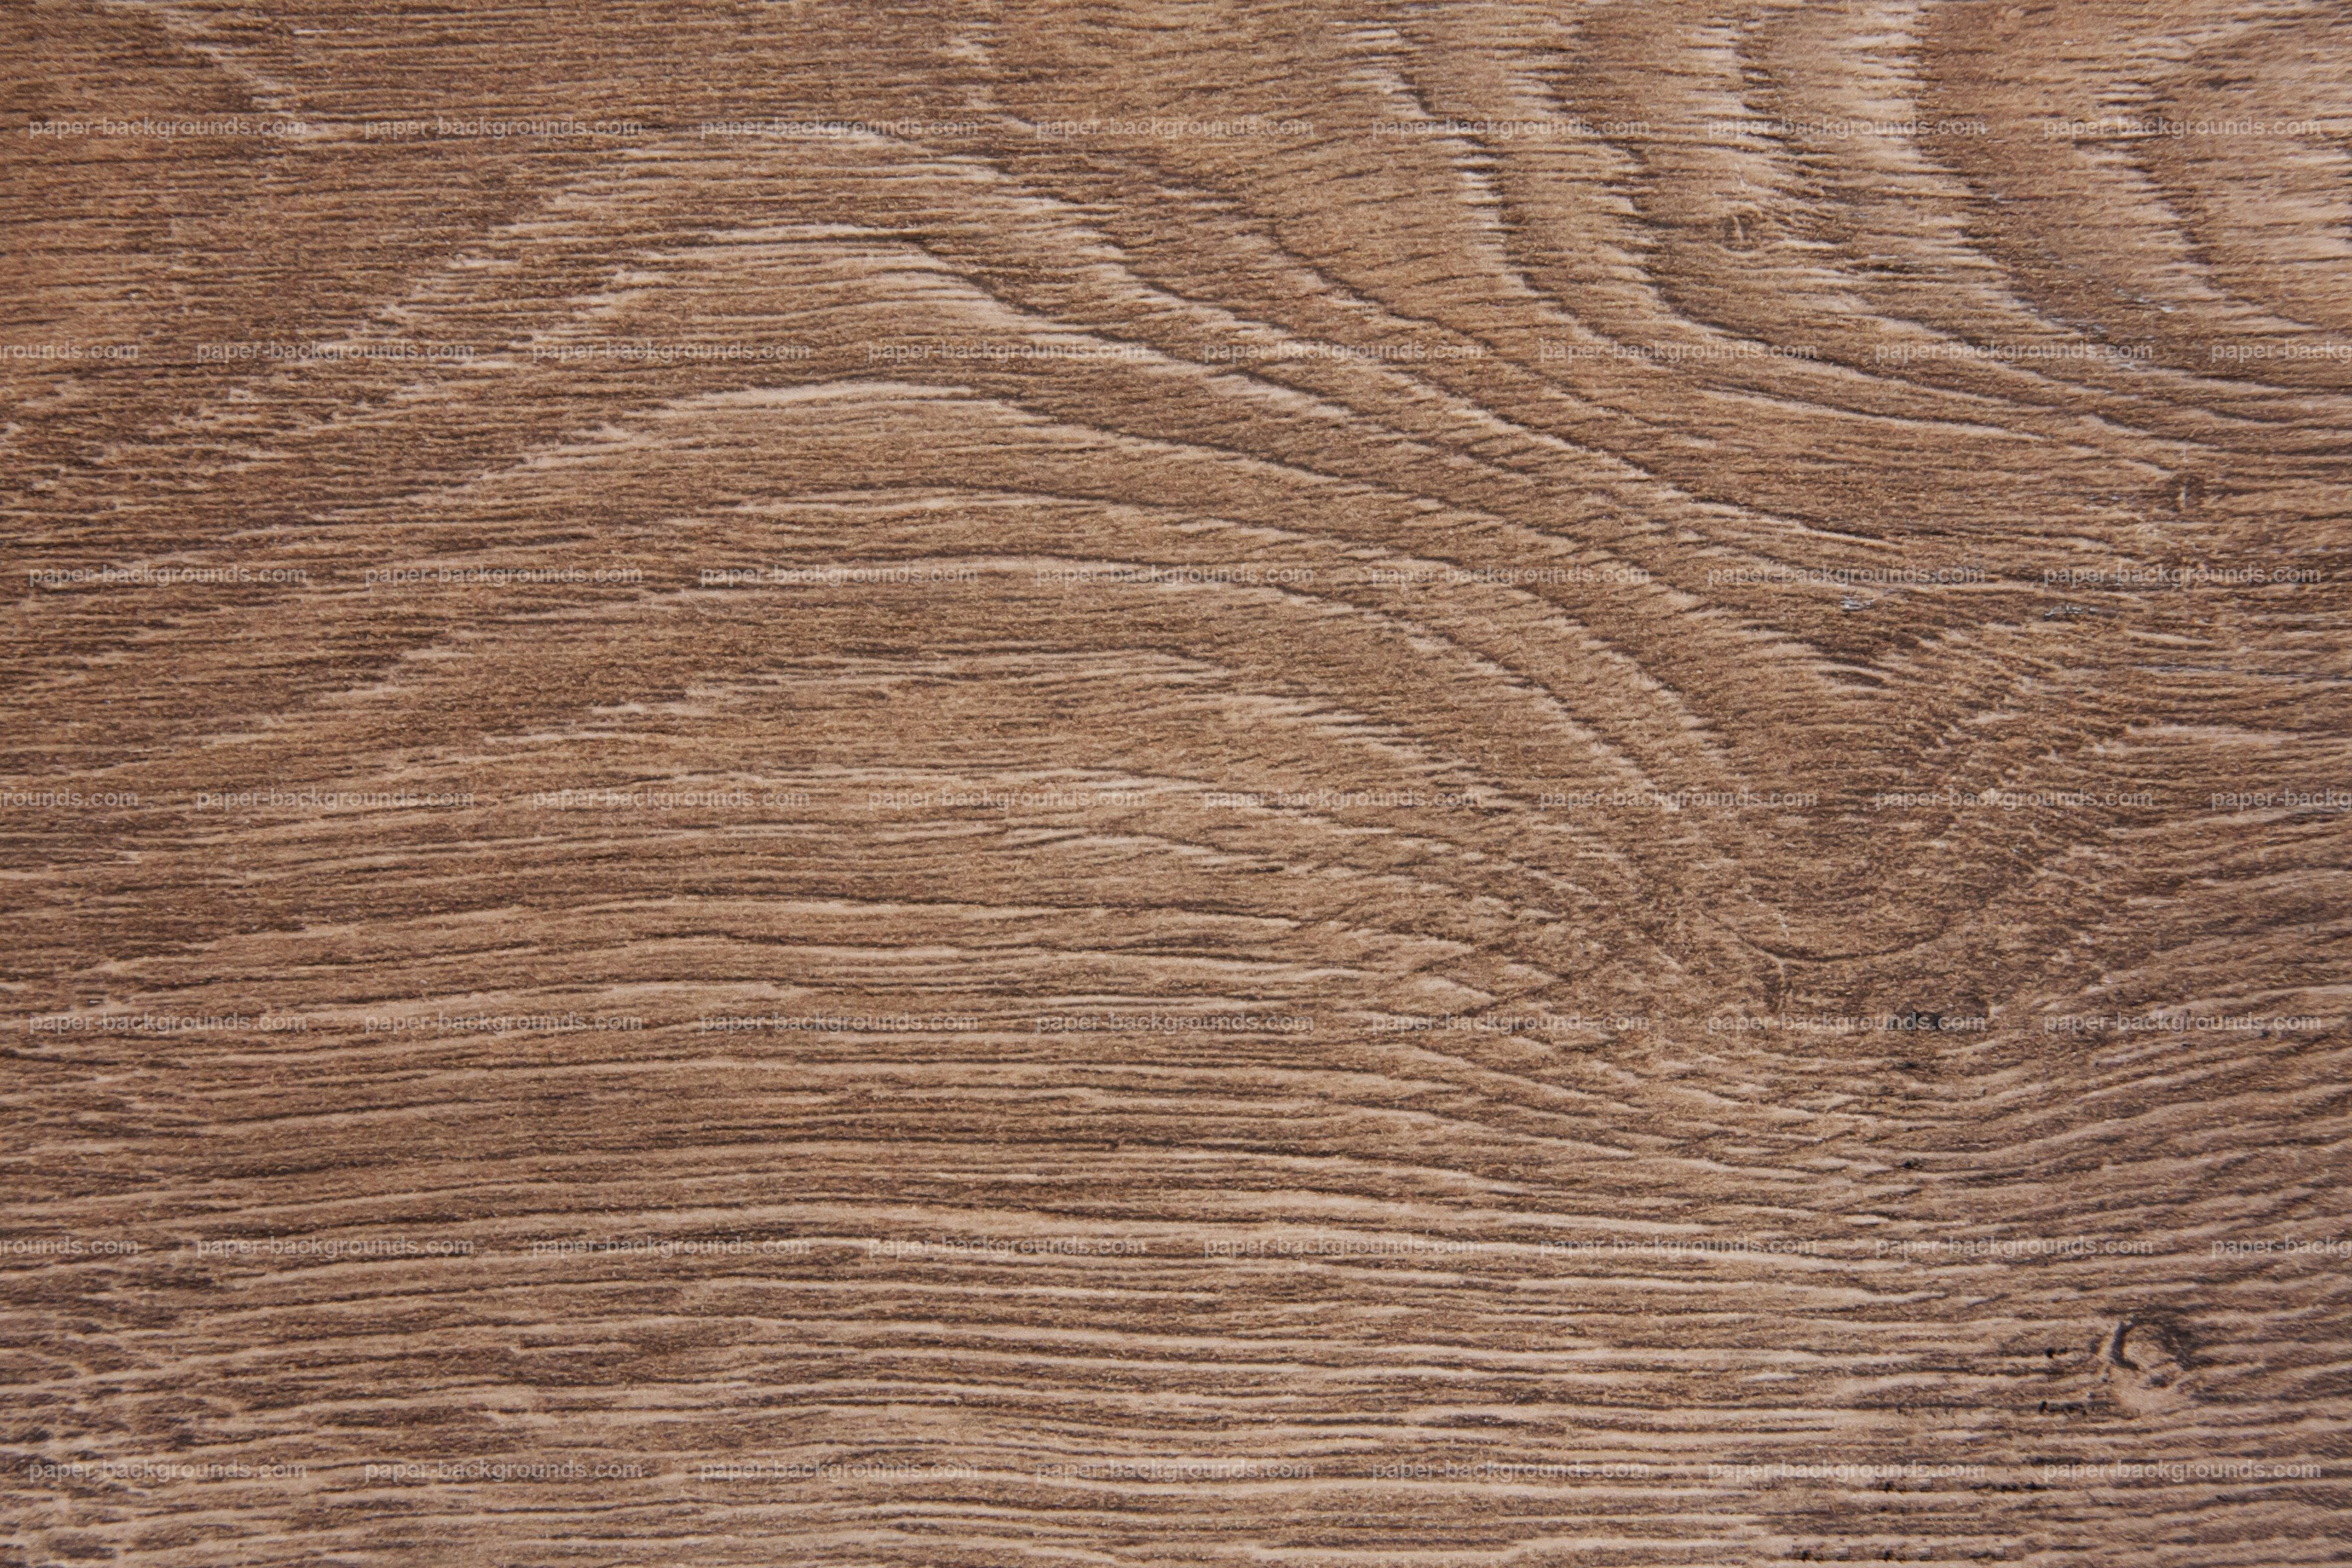 Natural wood texture  natural wood textures - Google Search | texture | Pinterest